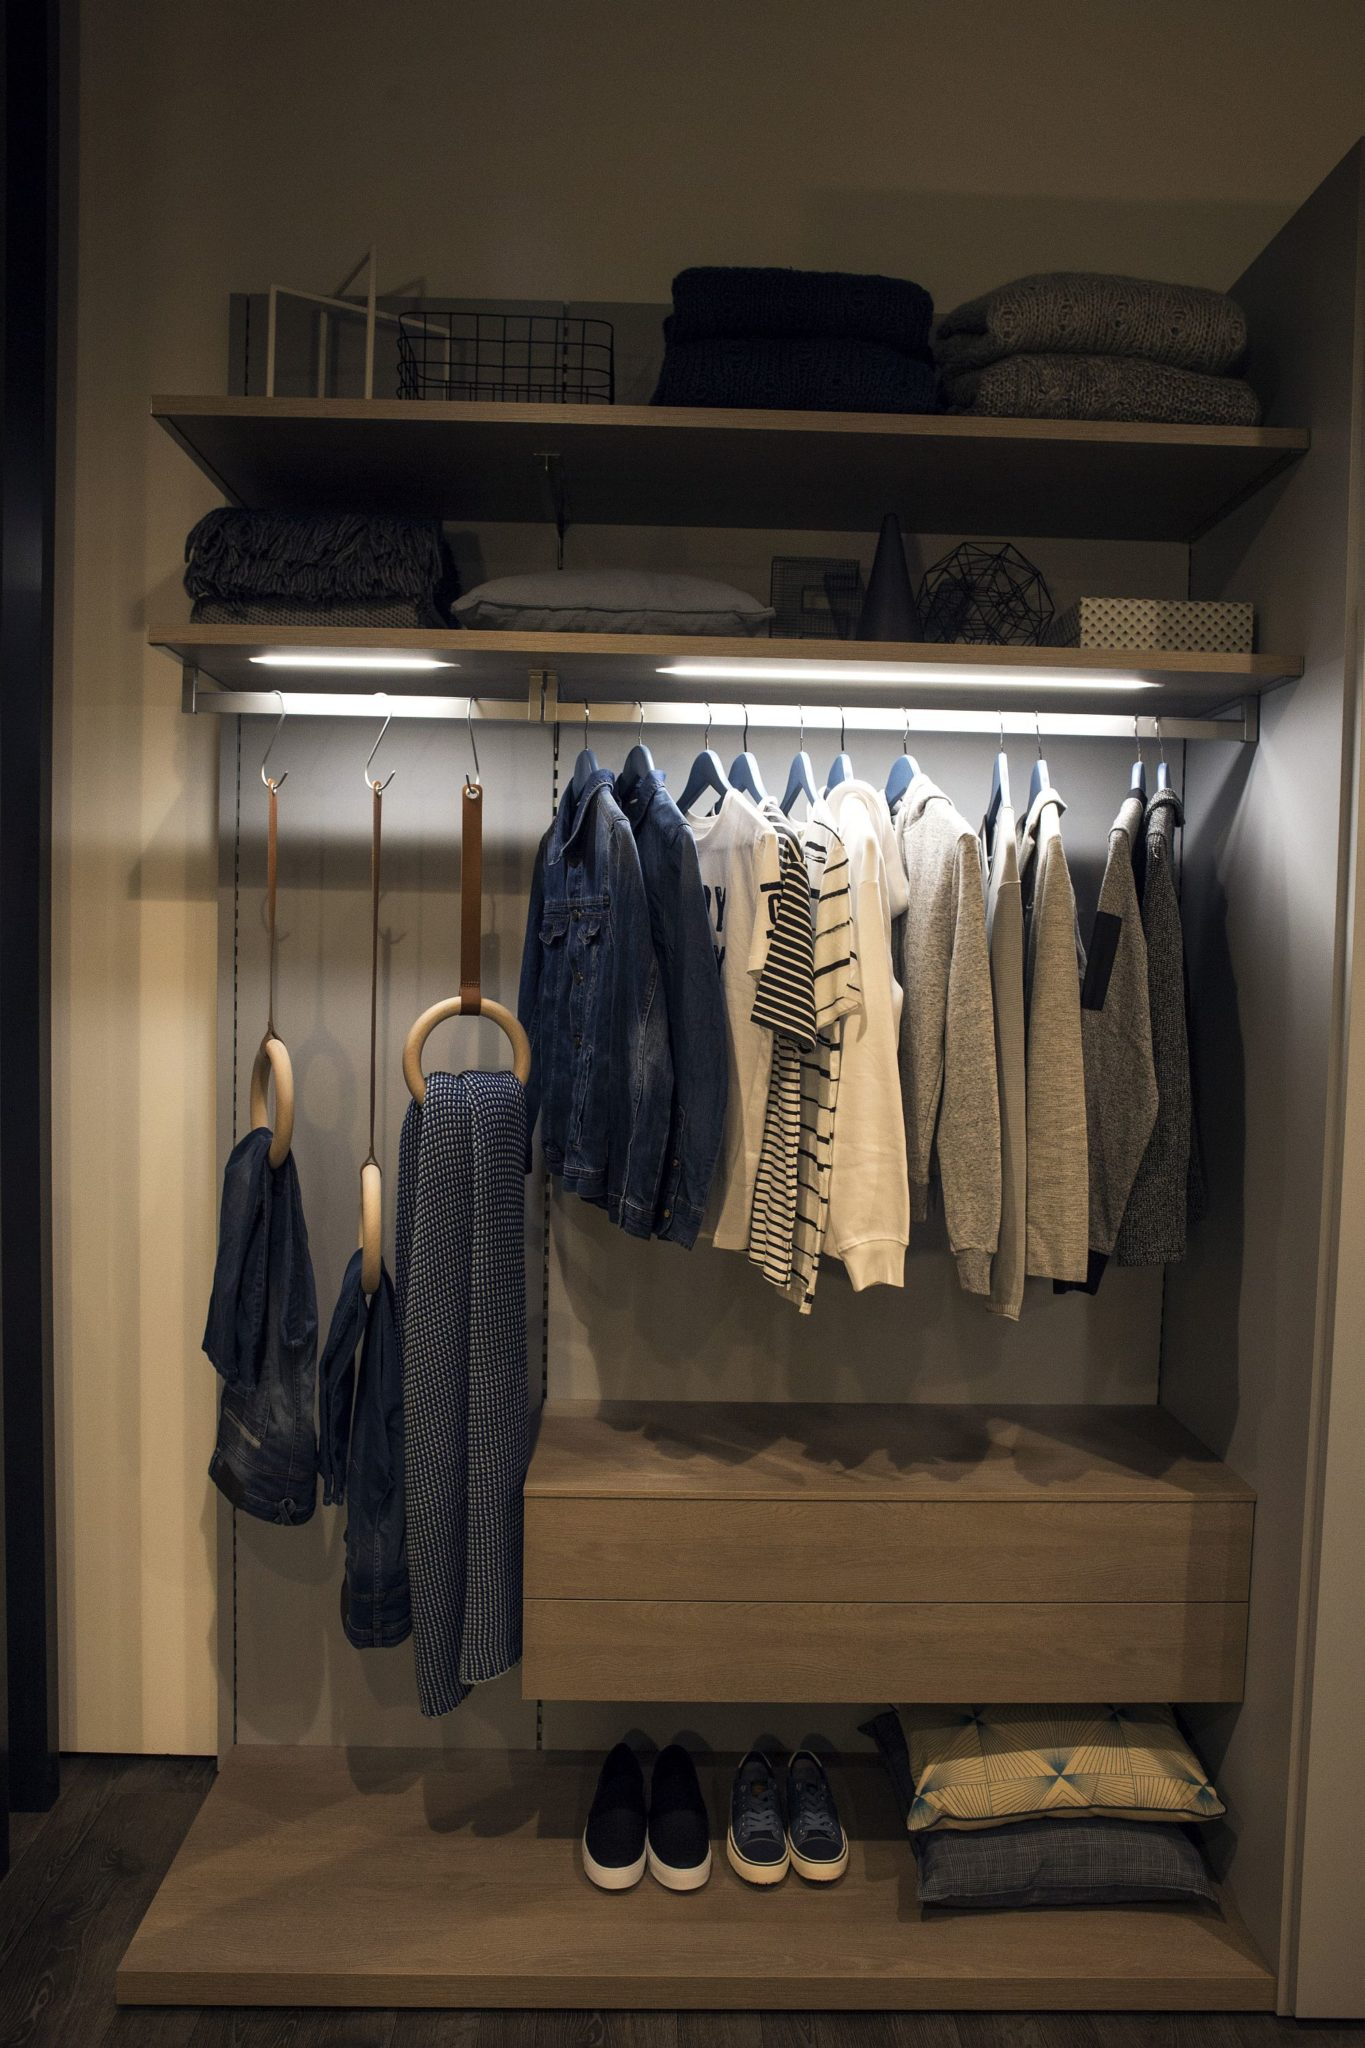 Sleek shelves and lighting combine to create a cool corner wardrobe